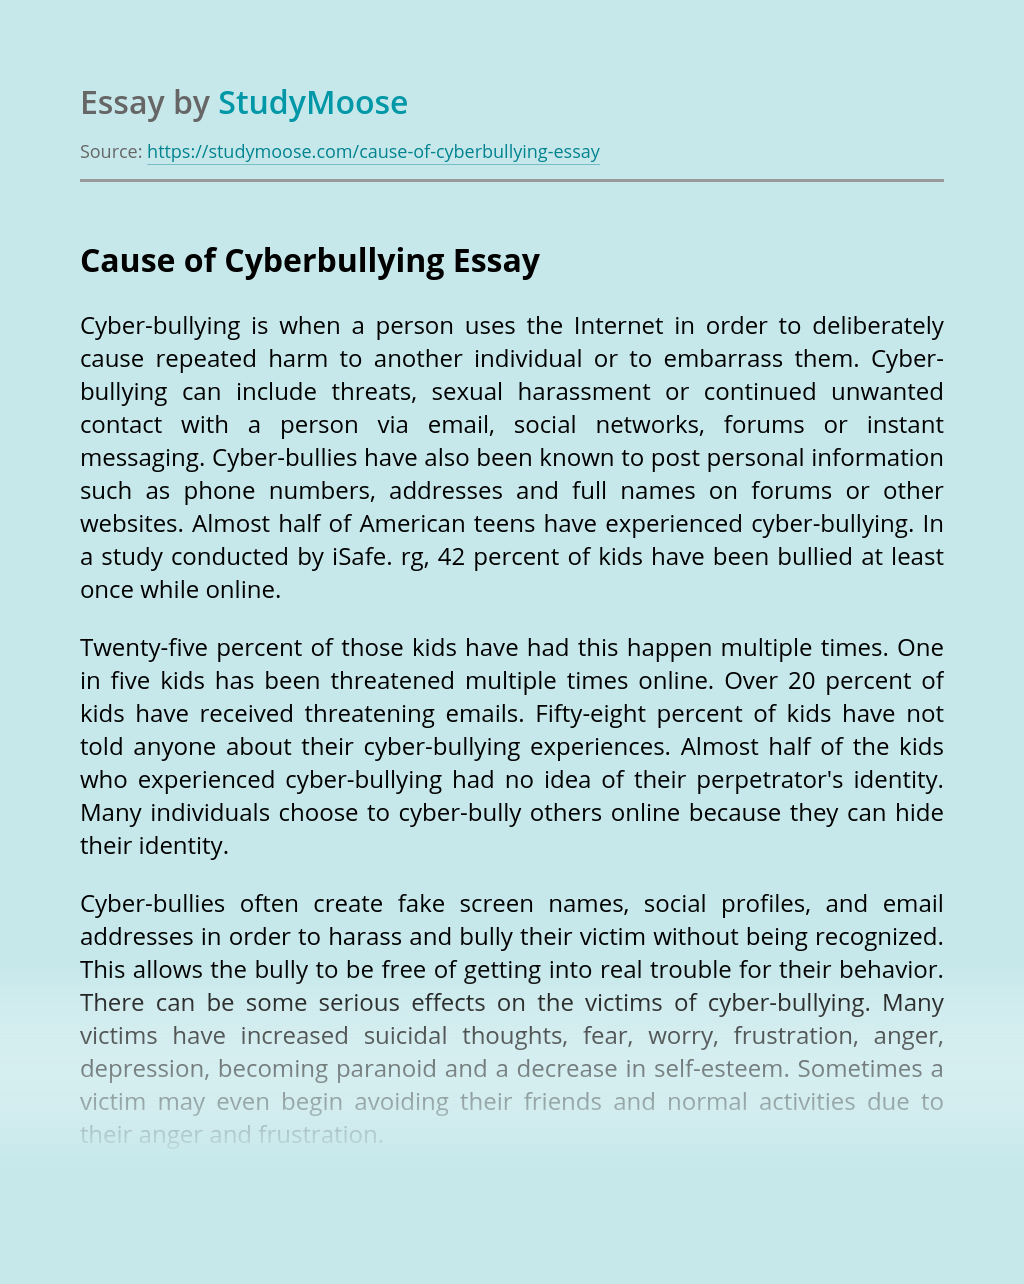 Cause of Cyberbullying